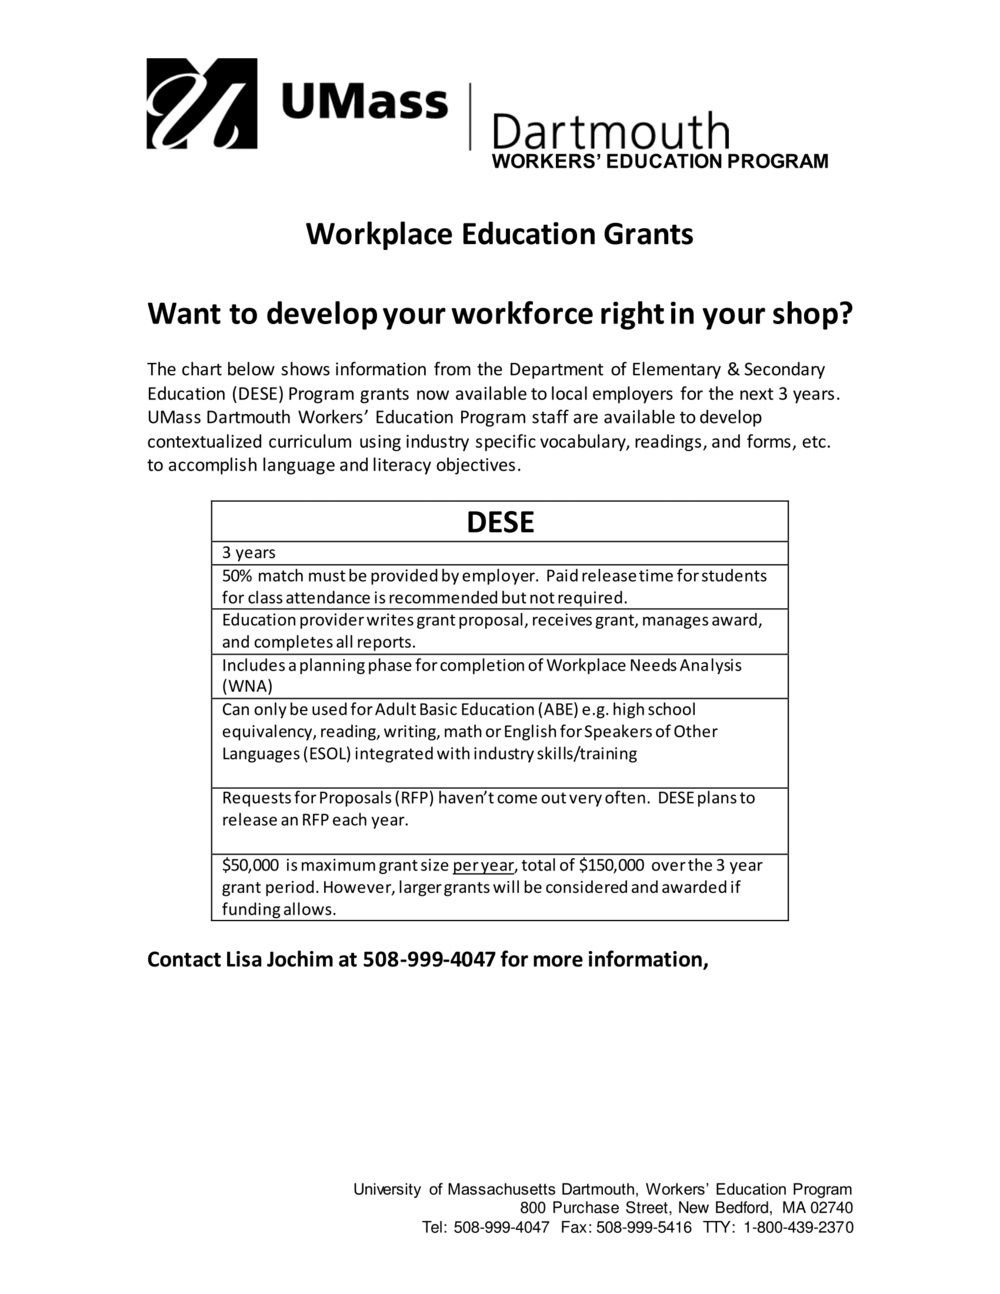 Click to view available Department of Elementary & Secondary Education Program grants!